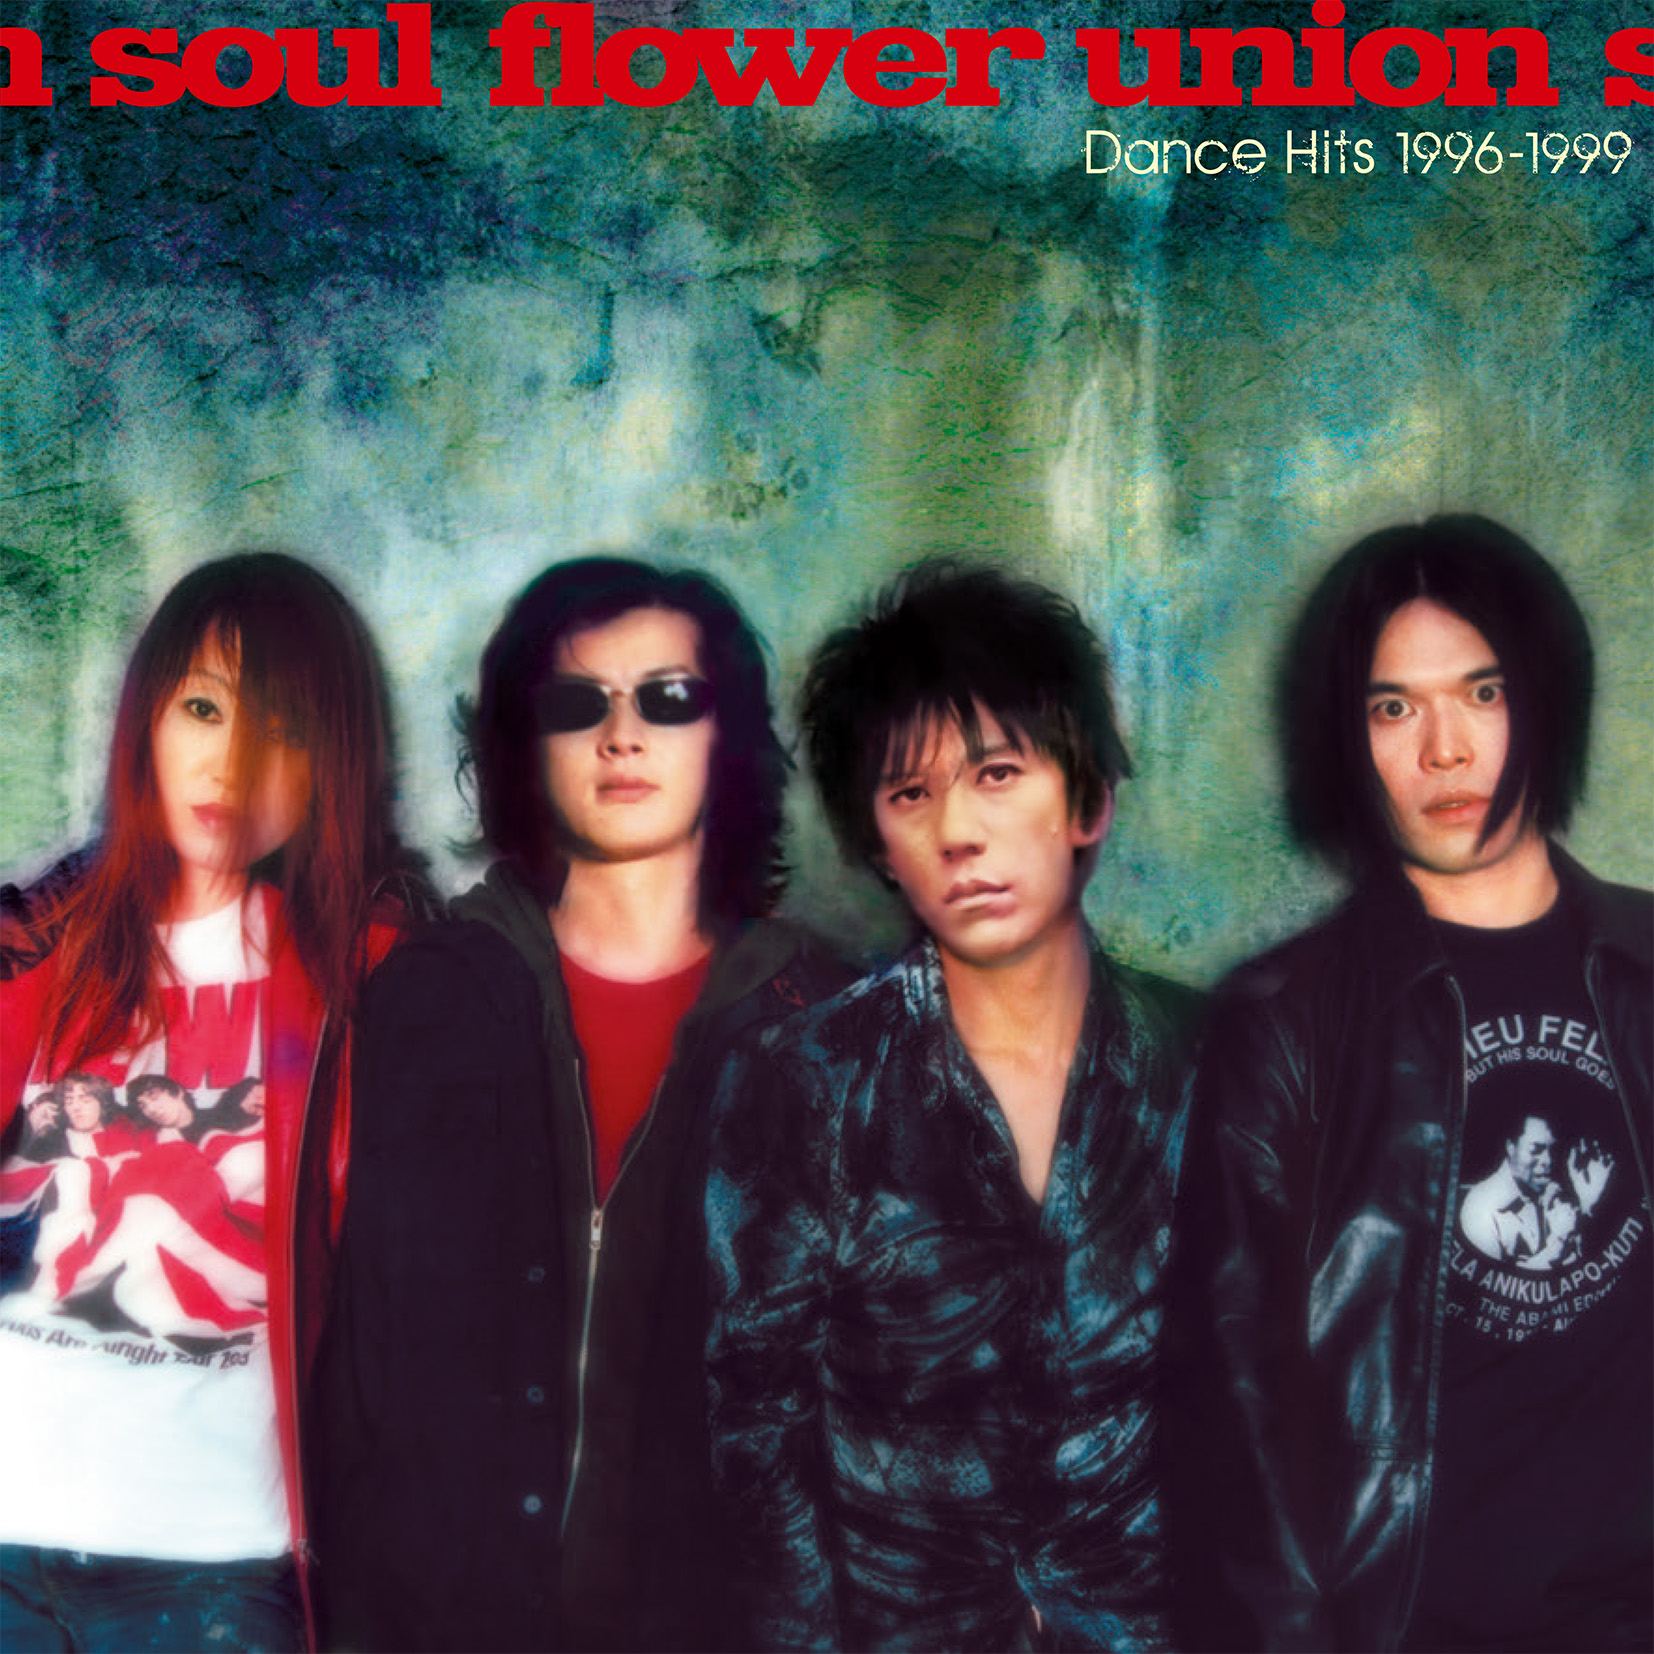 036_SOUL FLOWER UNION「DANCE HITS 1996-1999」